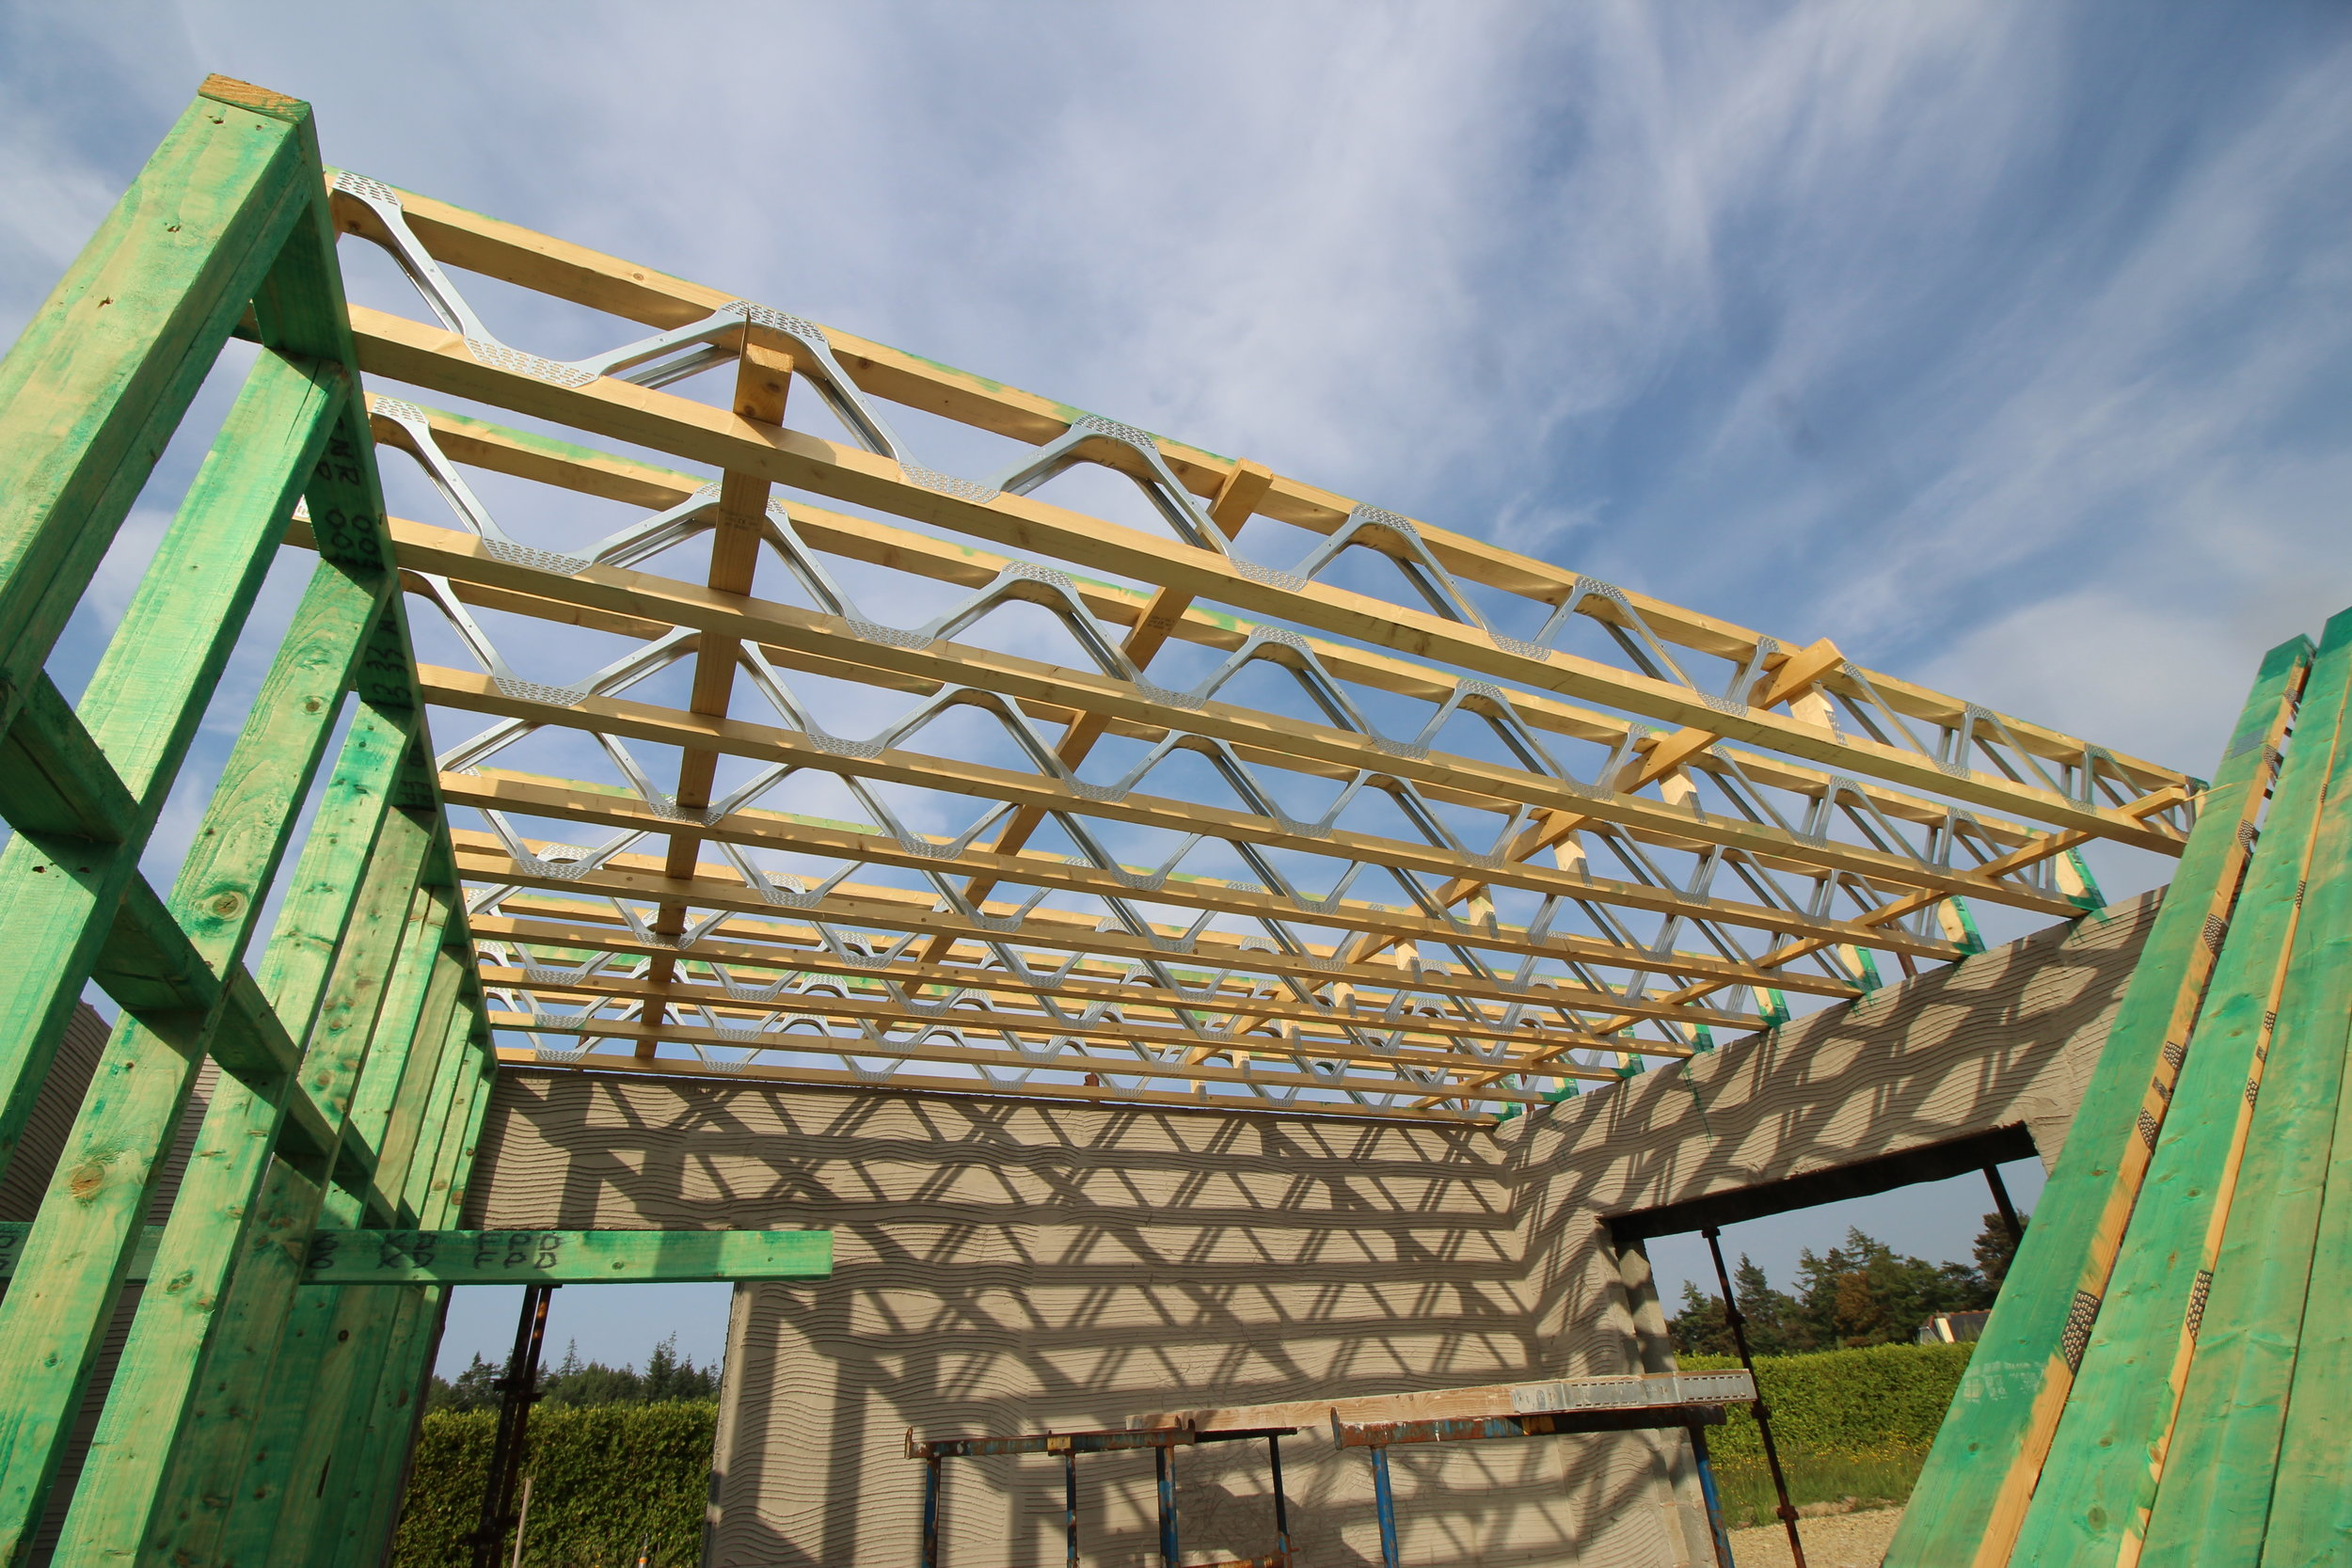 Eco Joists in place